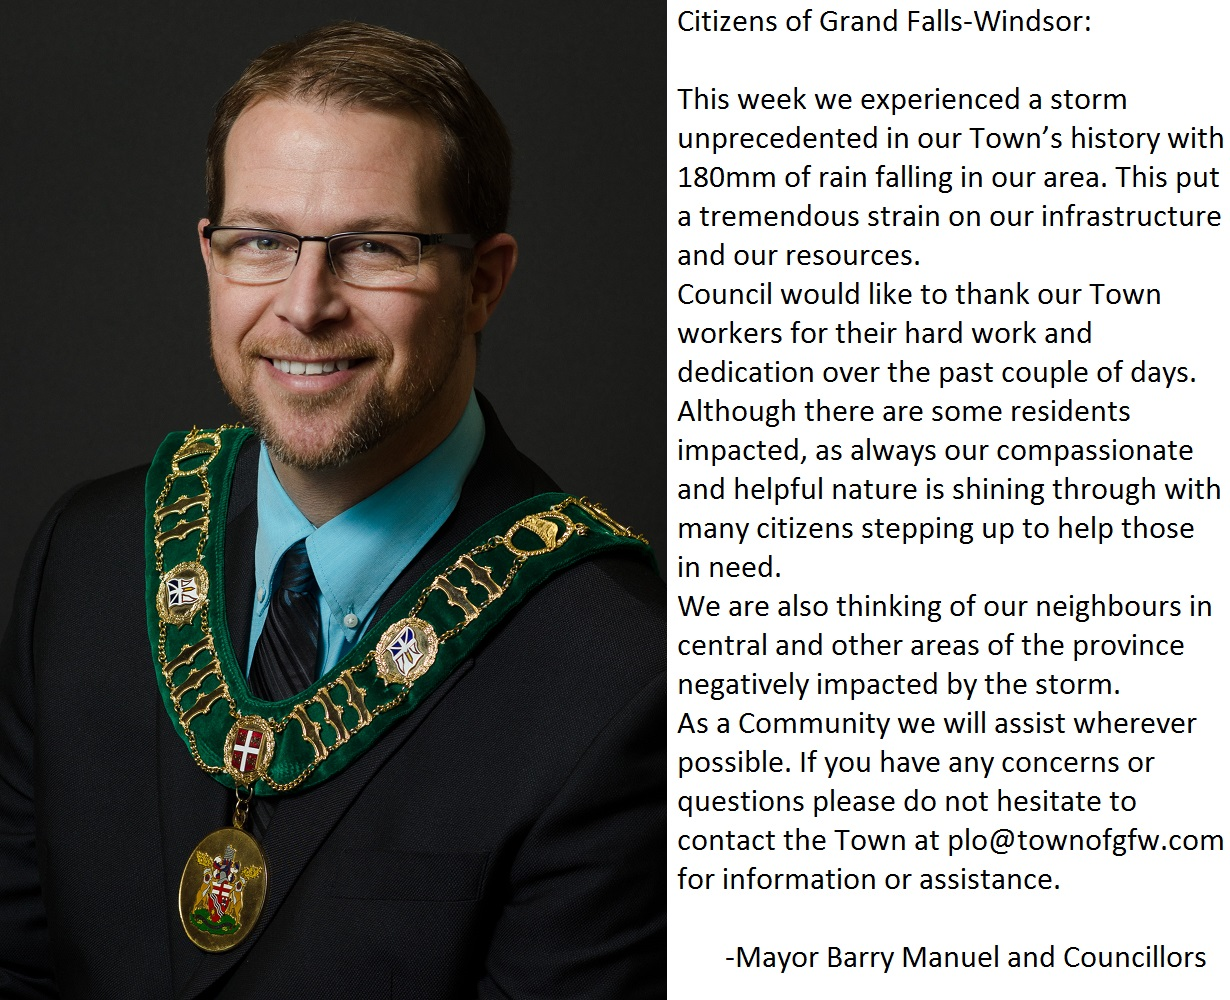 Message from Mayor and Councillors